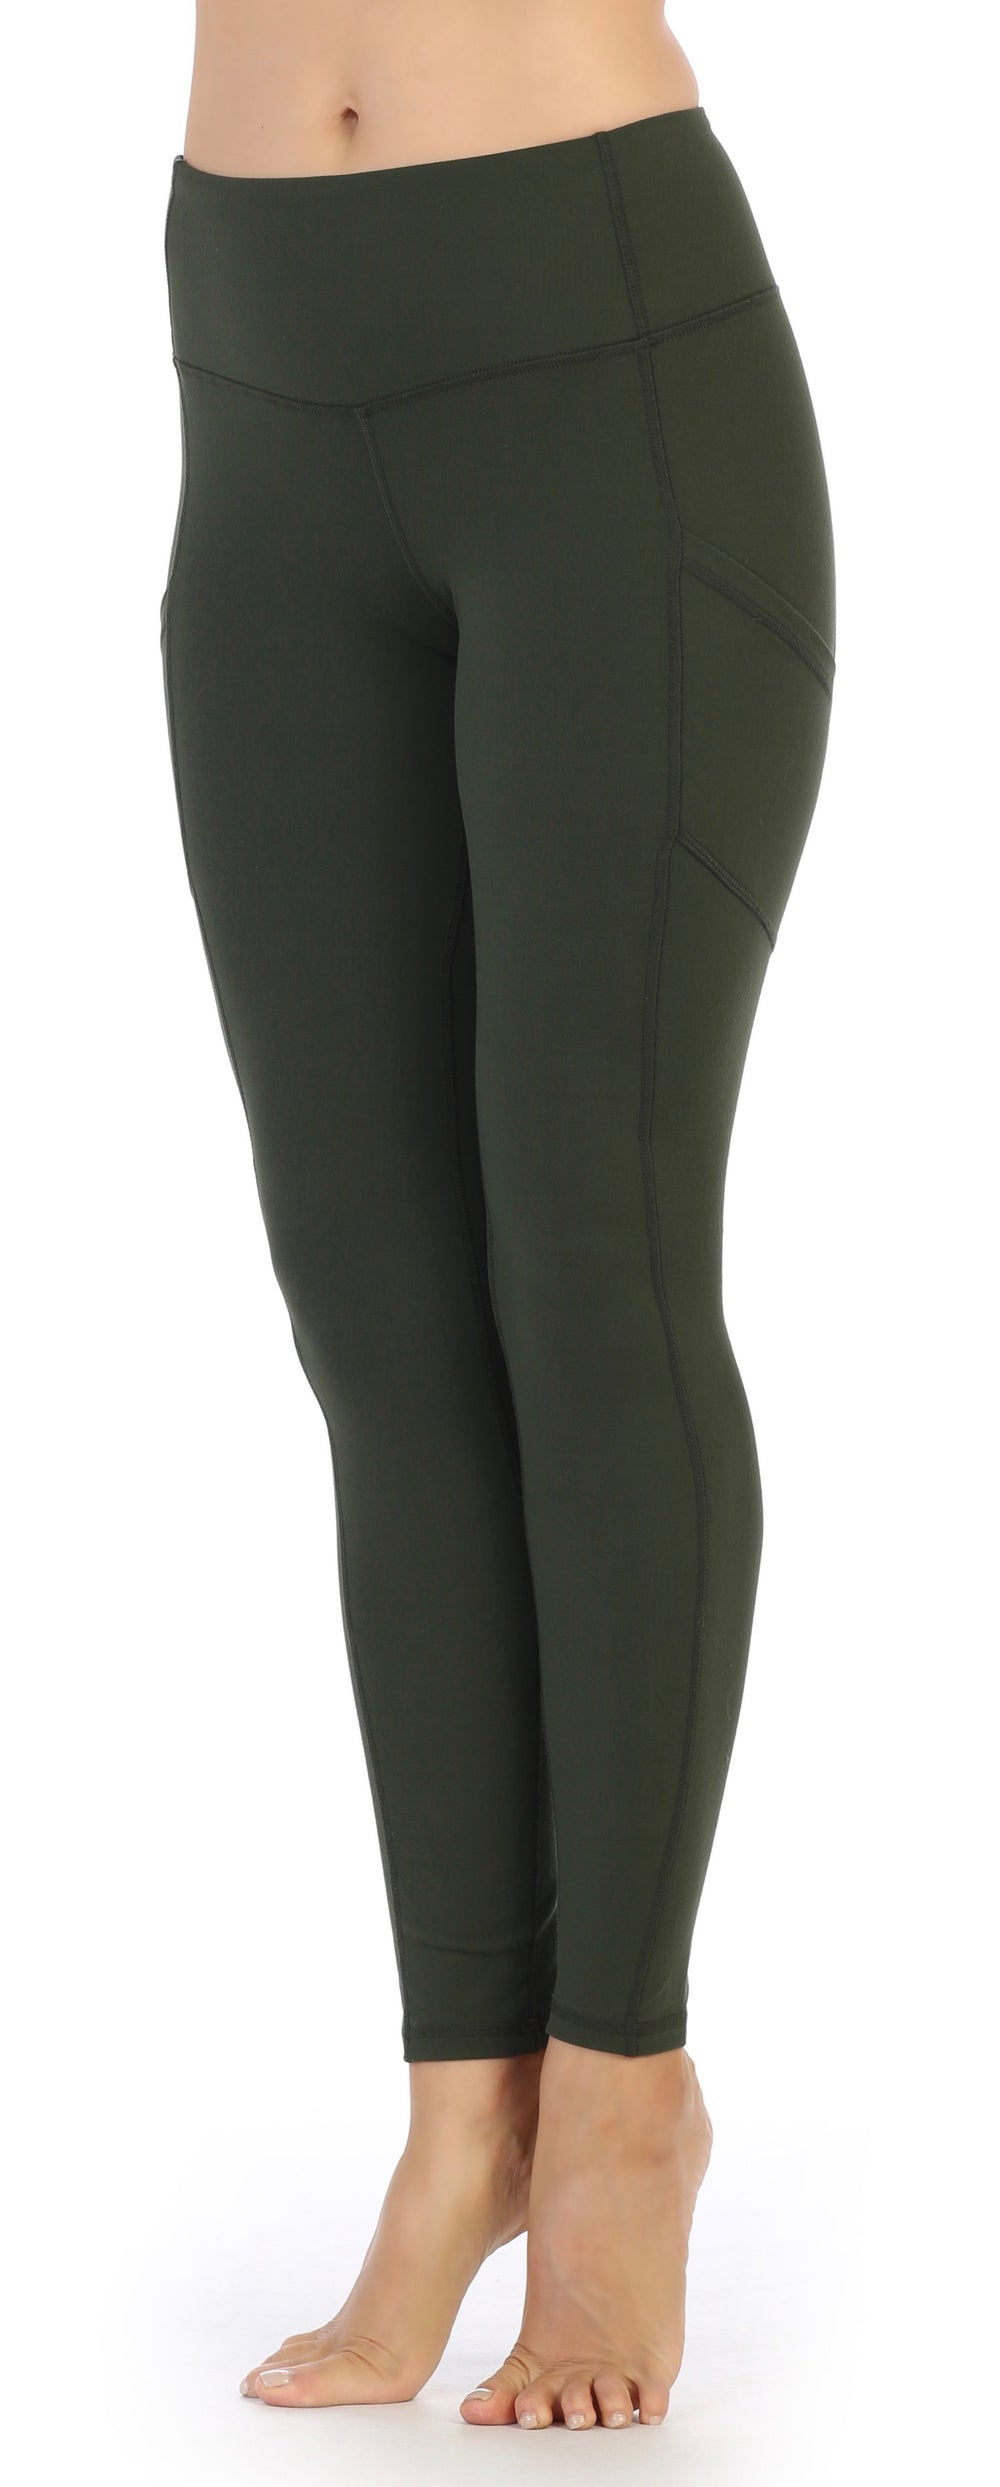 Olive-Women's Full Length Pocket Compression Leggings High Waisted-front